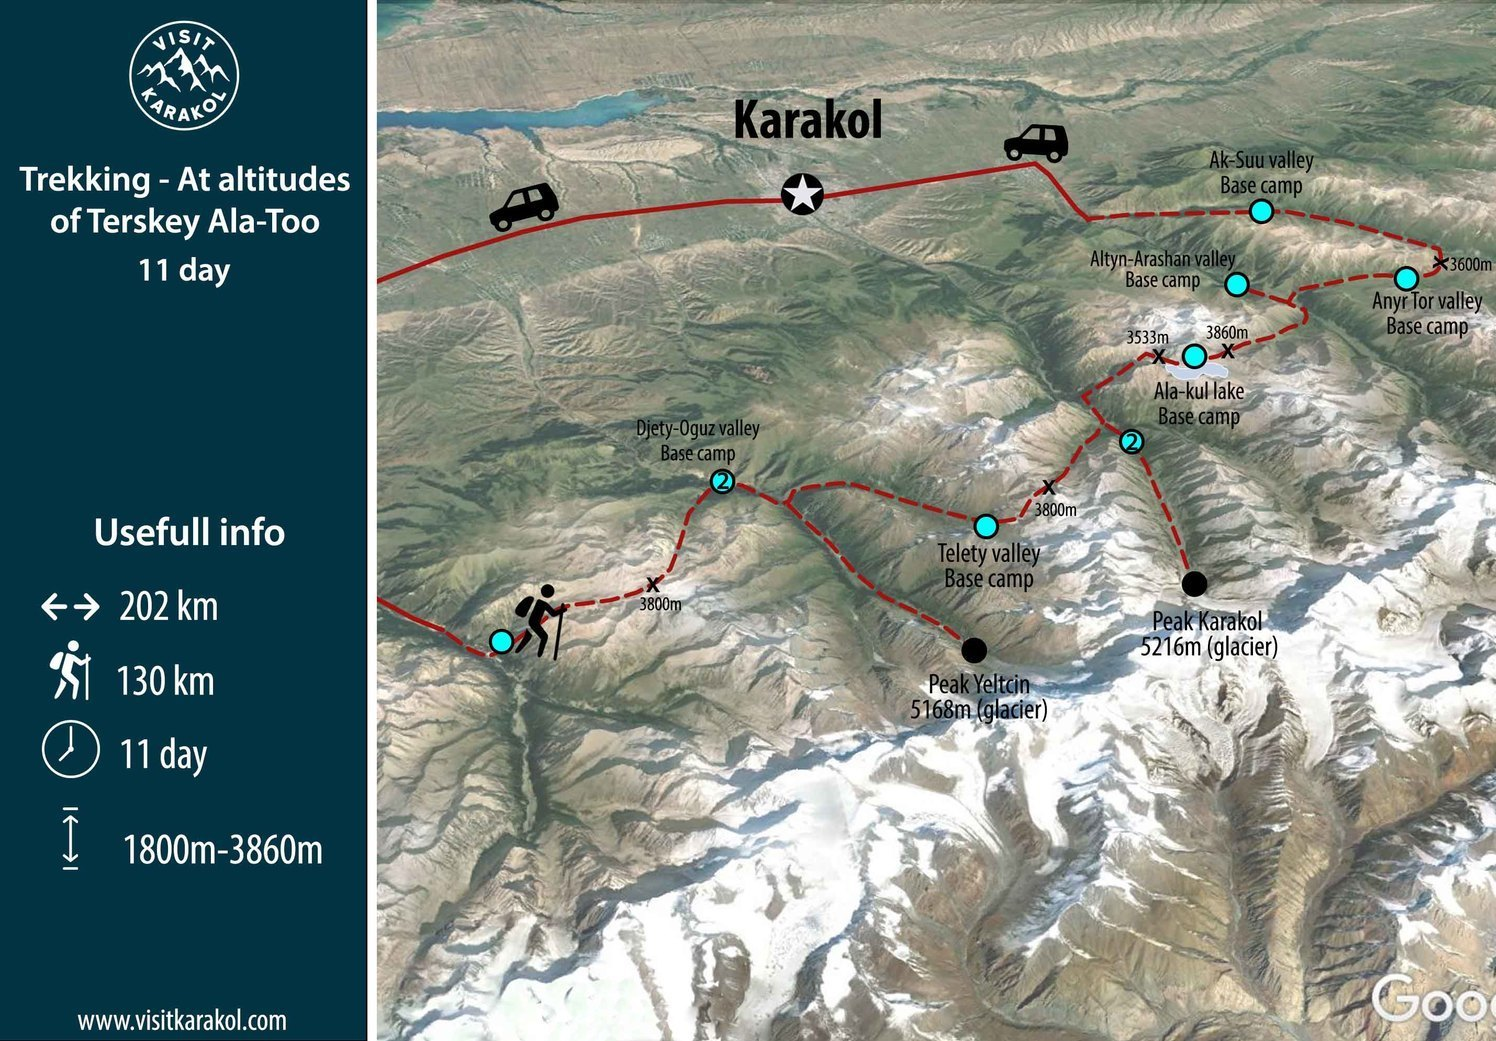 Map of Trekking tour in Kyrgyzstan 11 days